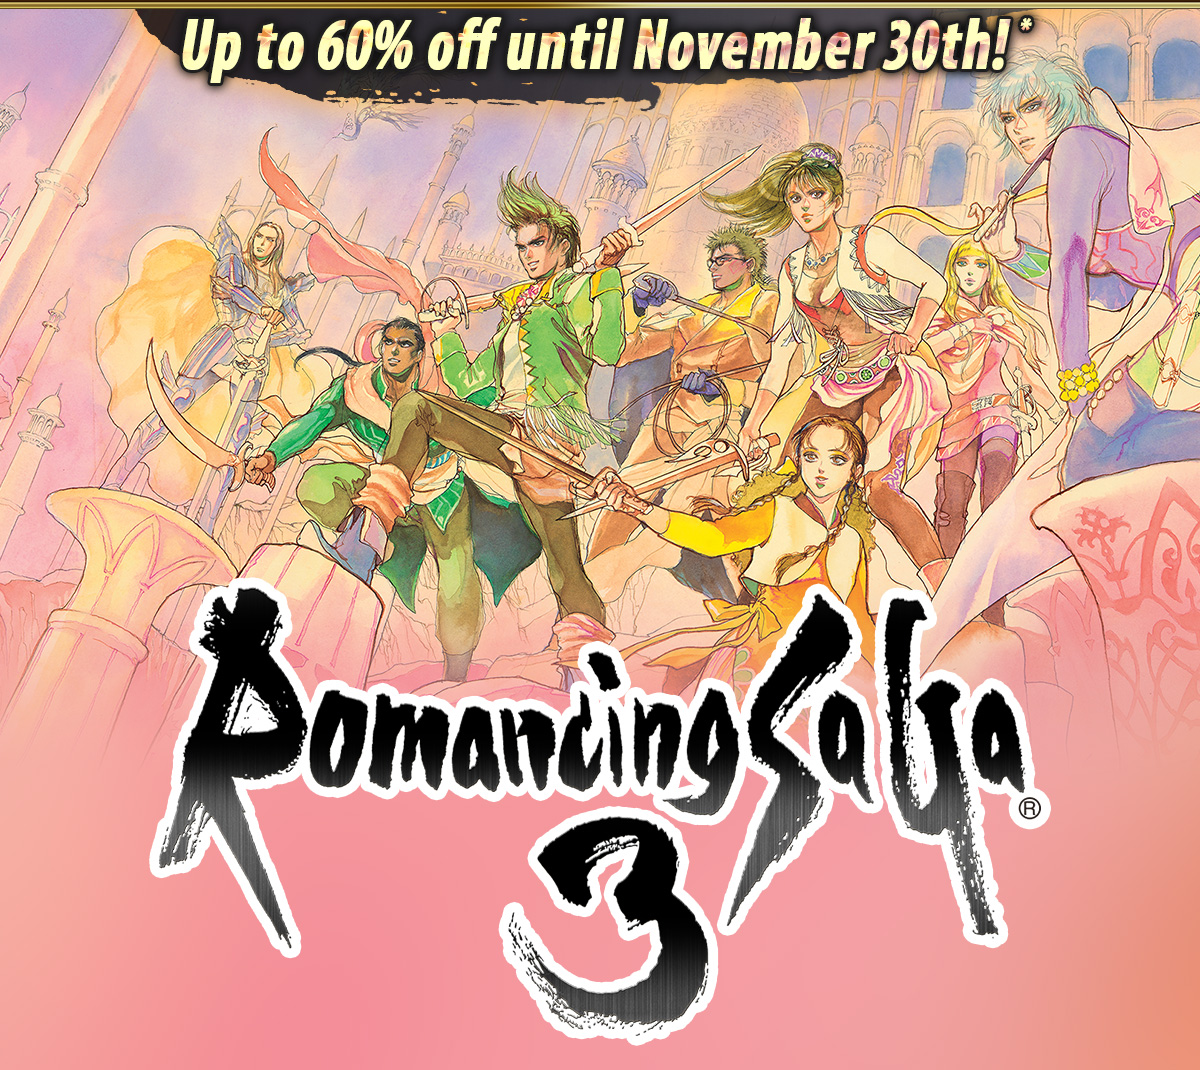 Up to 60% off until November 30th!*